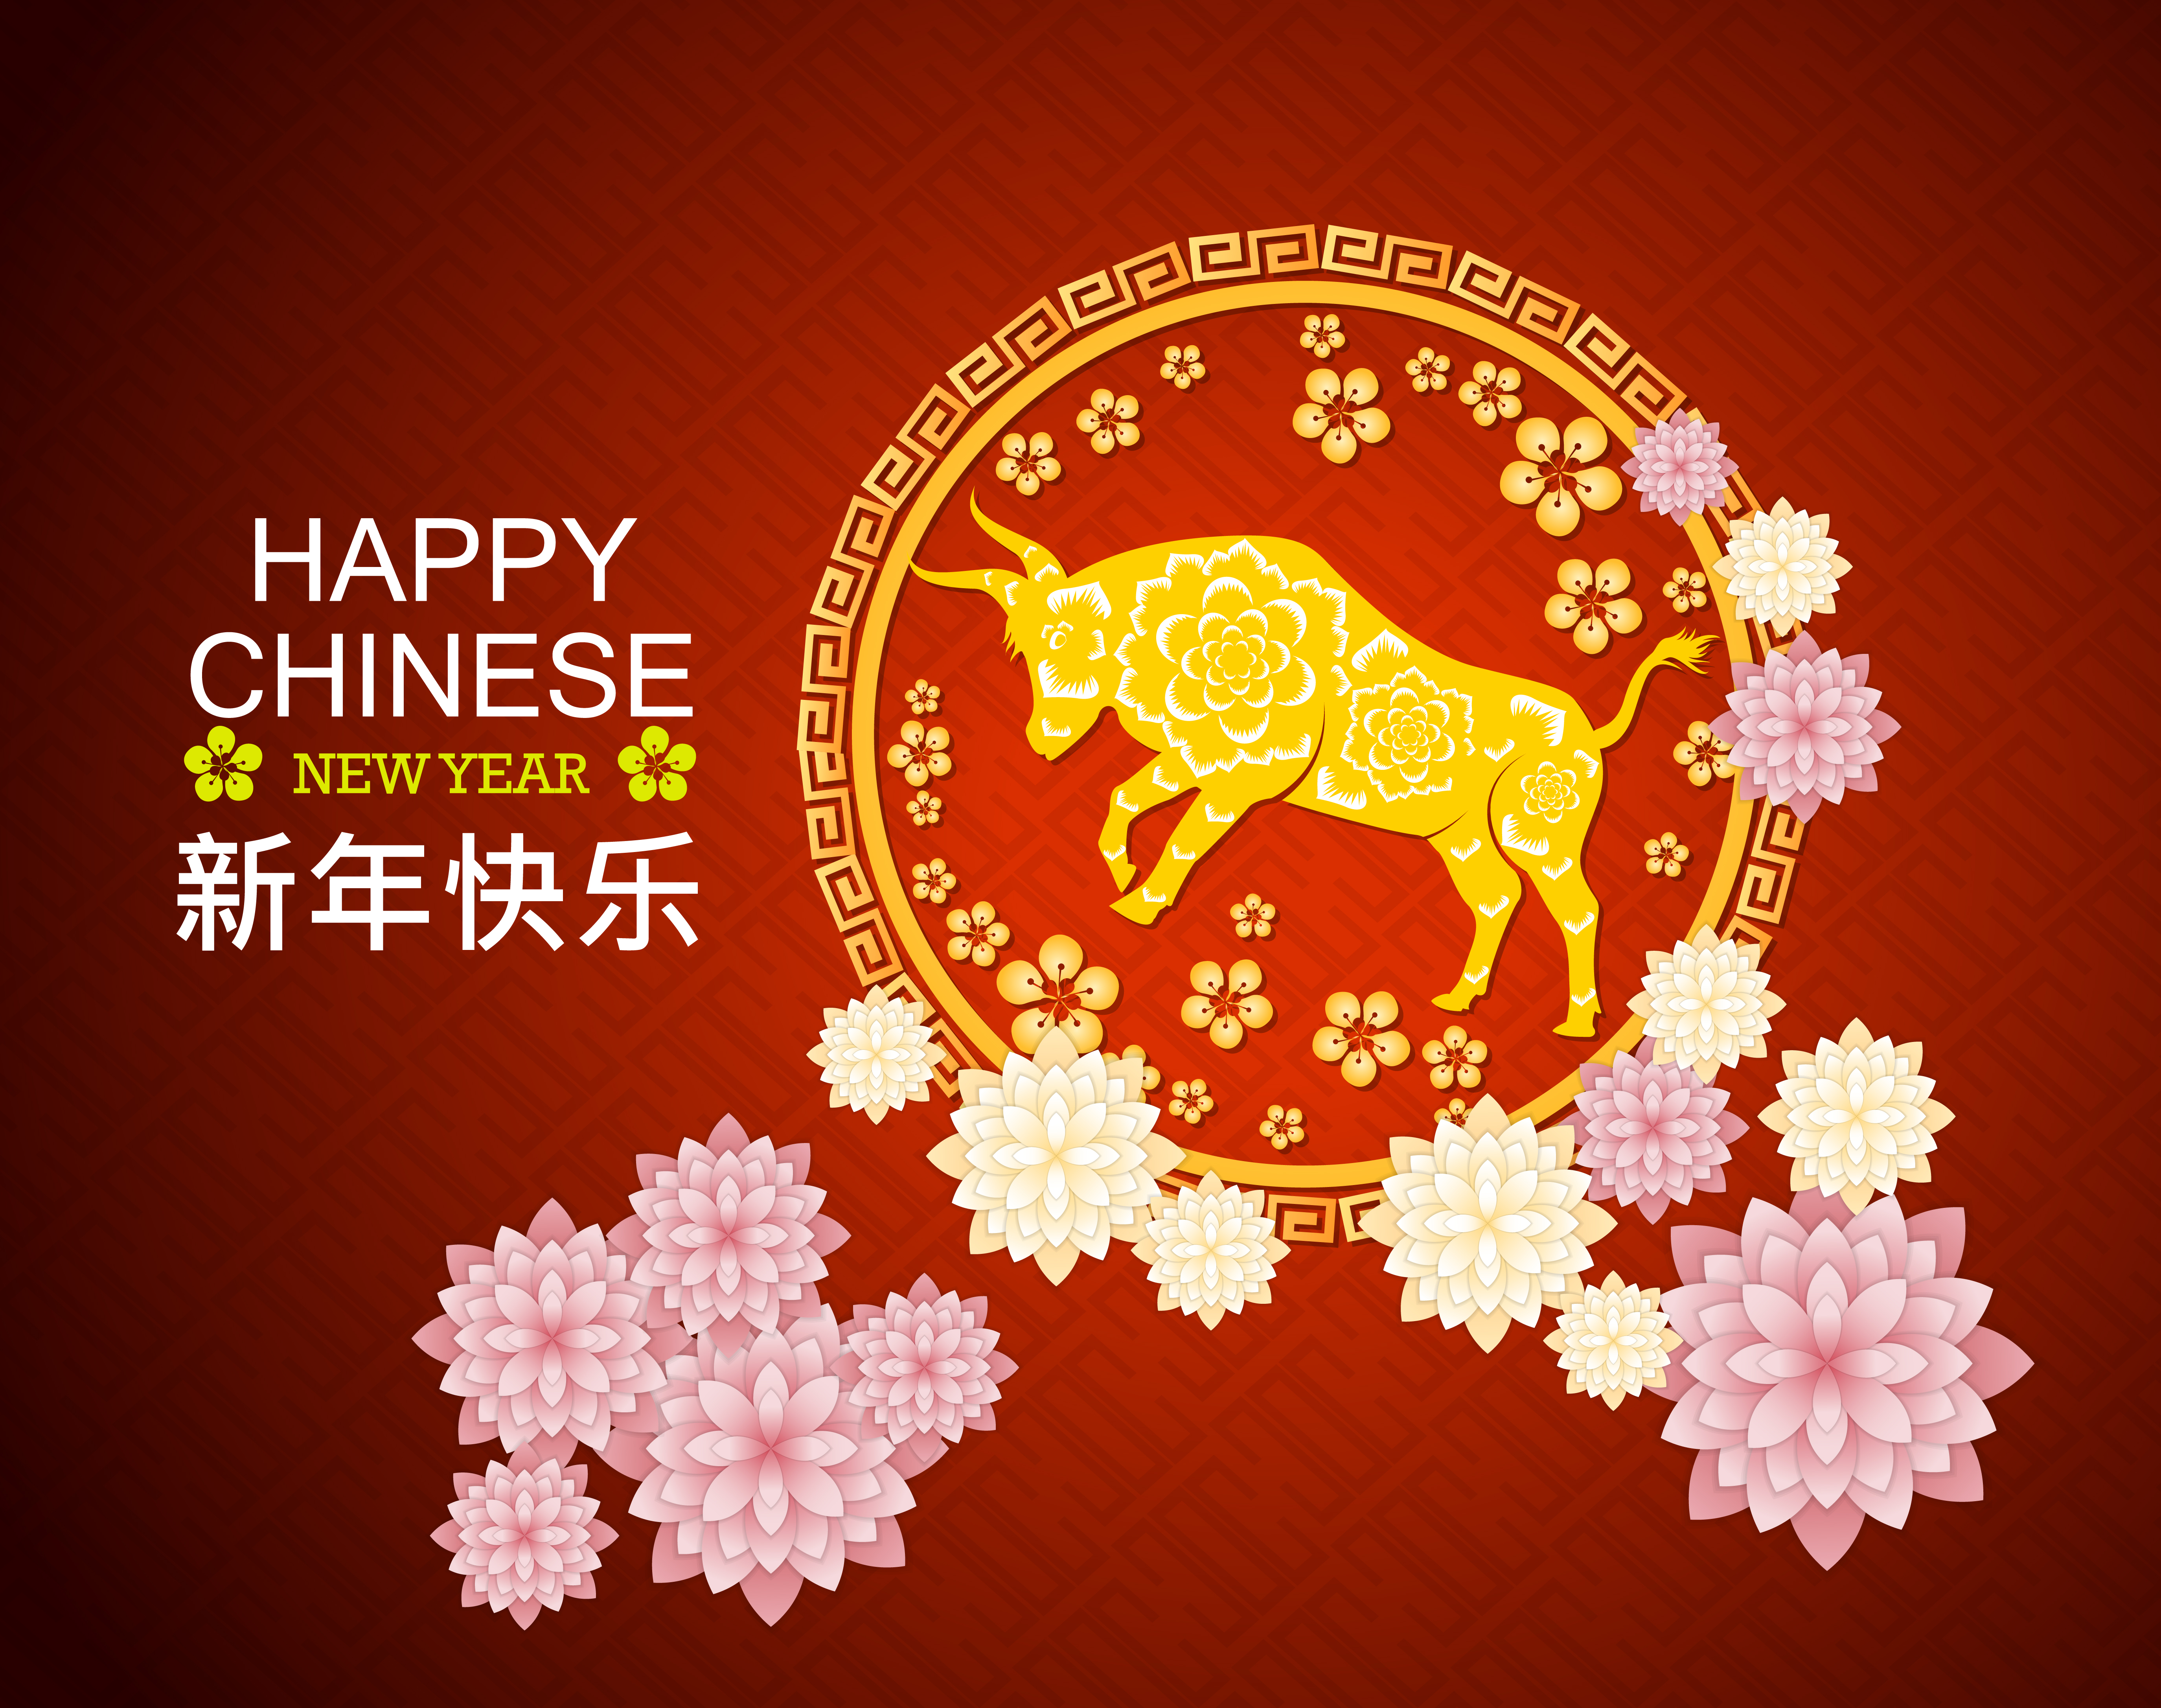 Happy Chinese New Year 2021 Red Greeting Download Free Vectors Clipart Graphics Vector Art